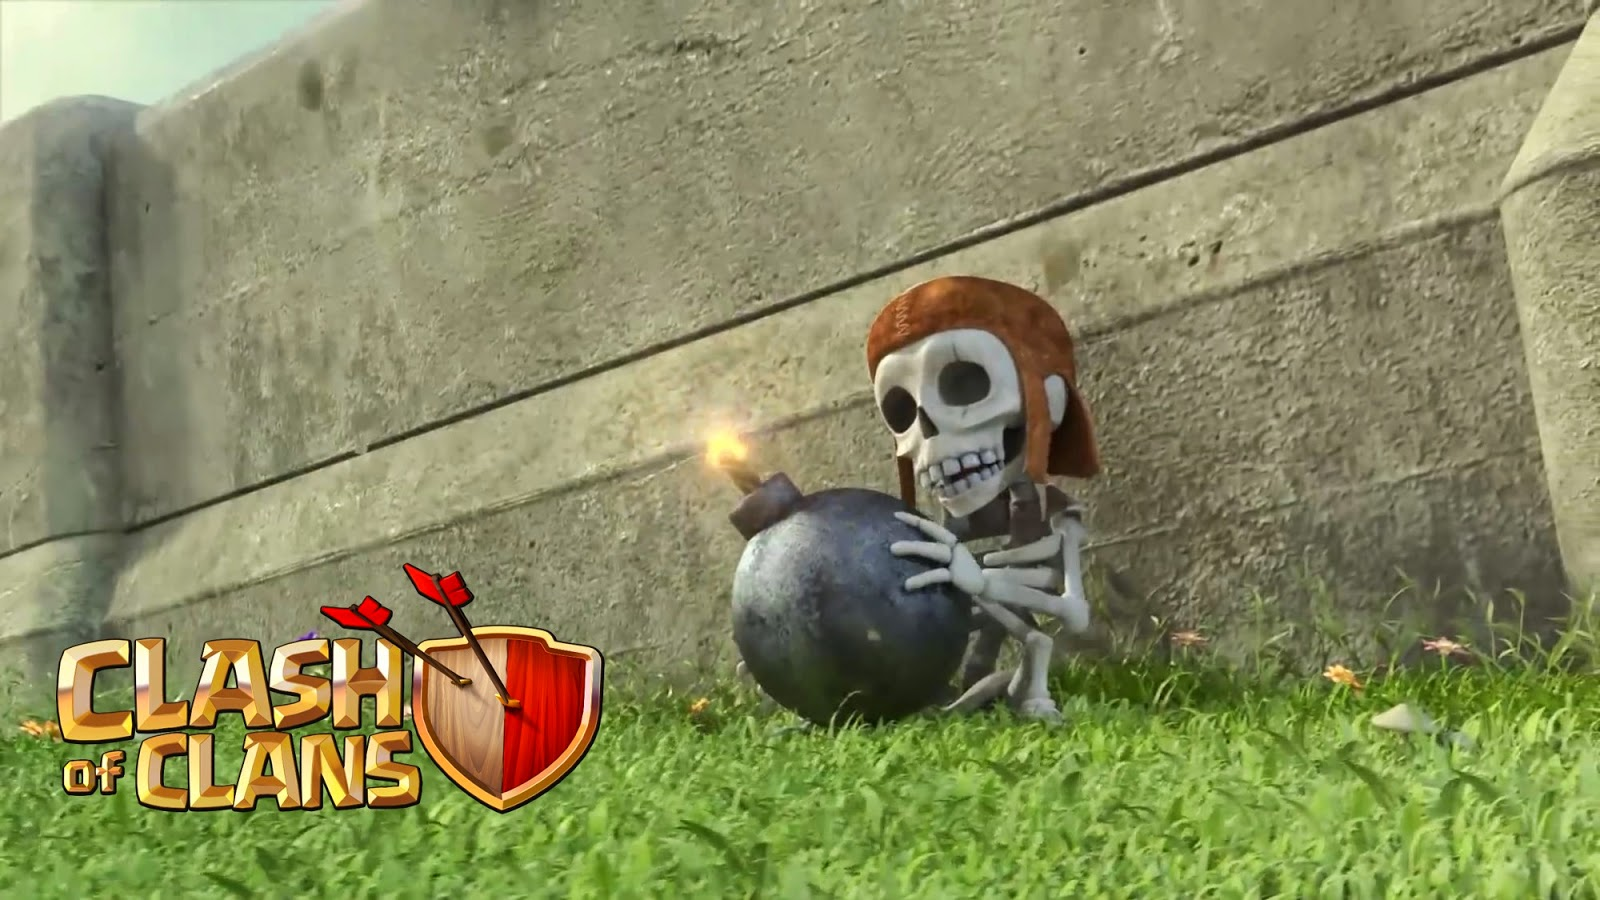 Clash Clans Wallpapers And S 4K Full HD